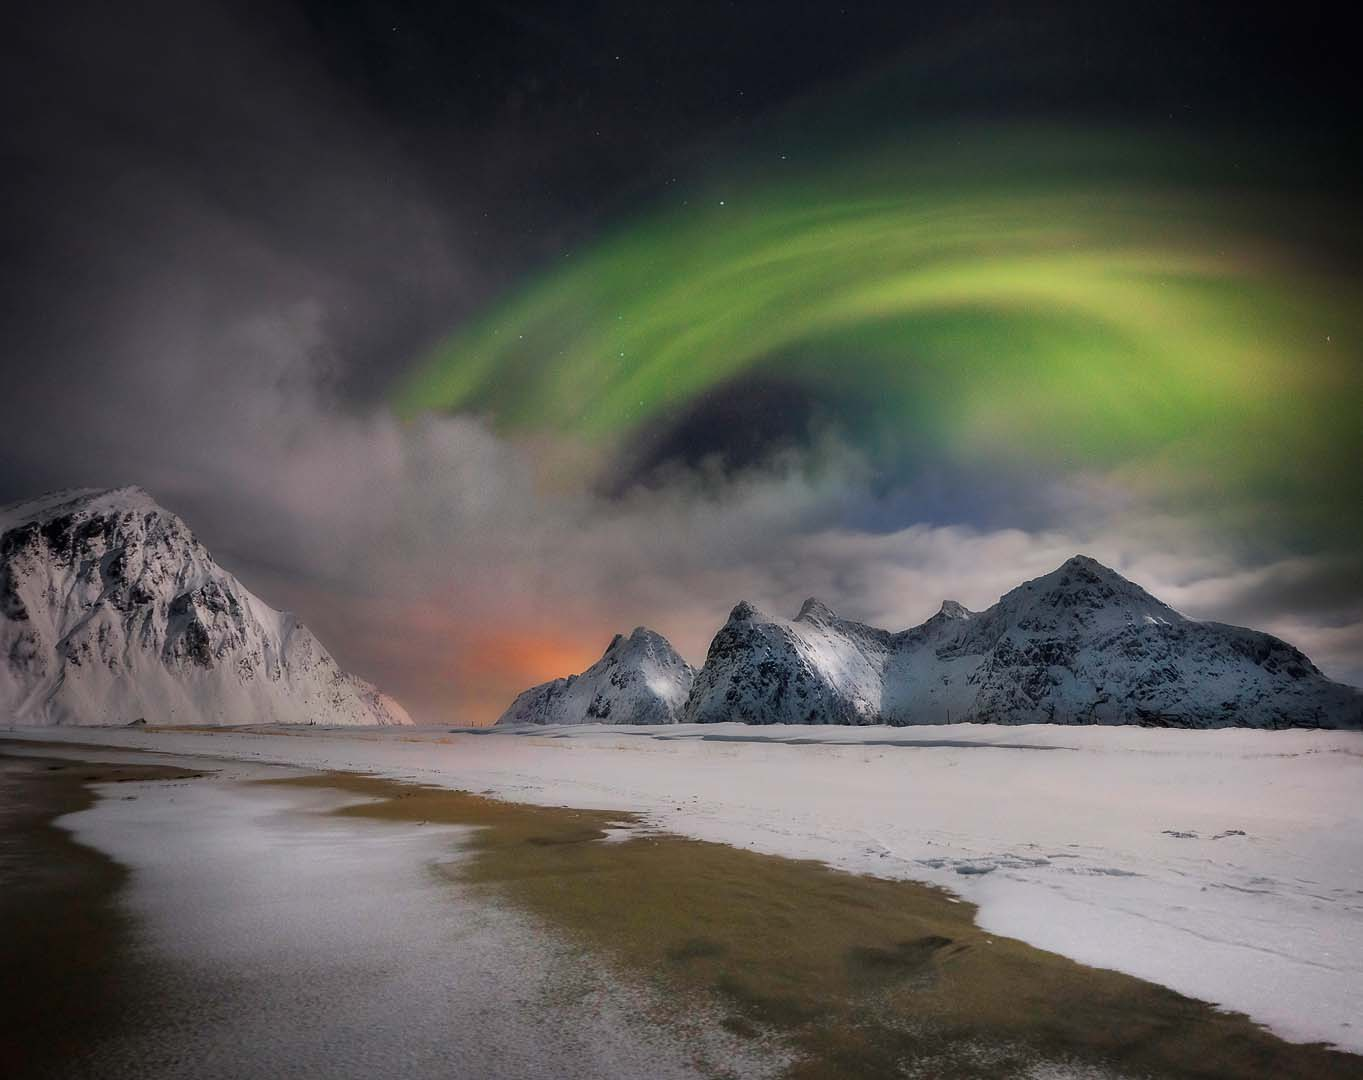 Chasing the Northern Lights On The Lofoten Islands